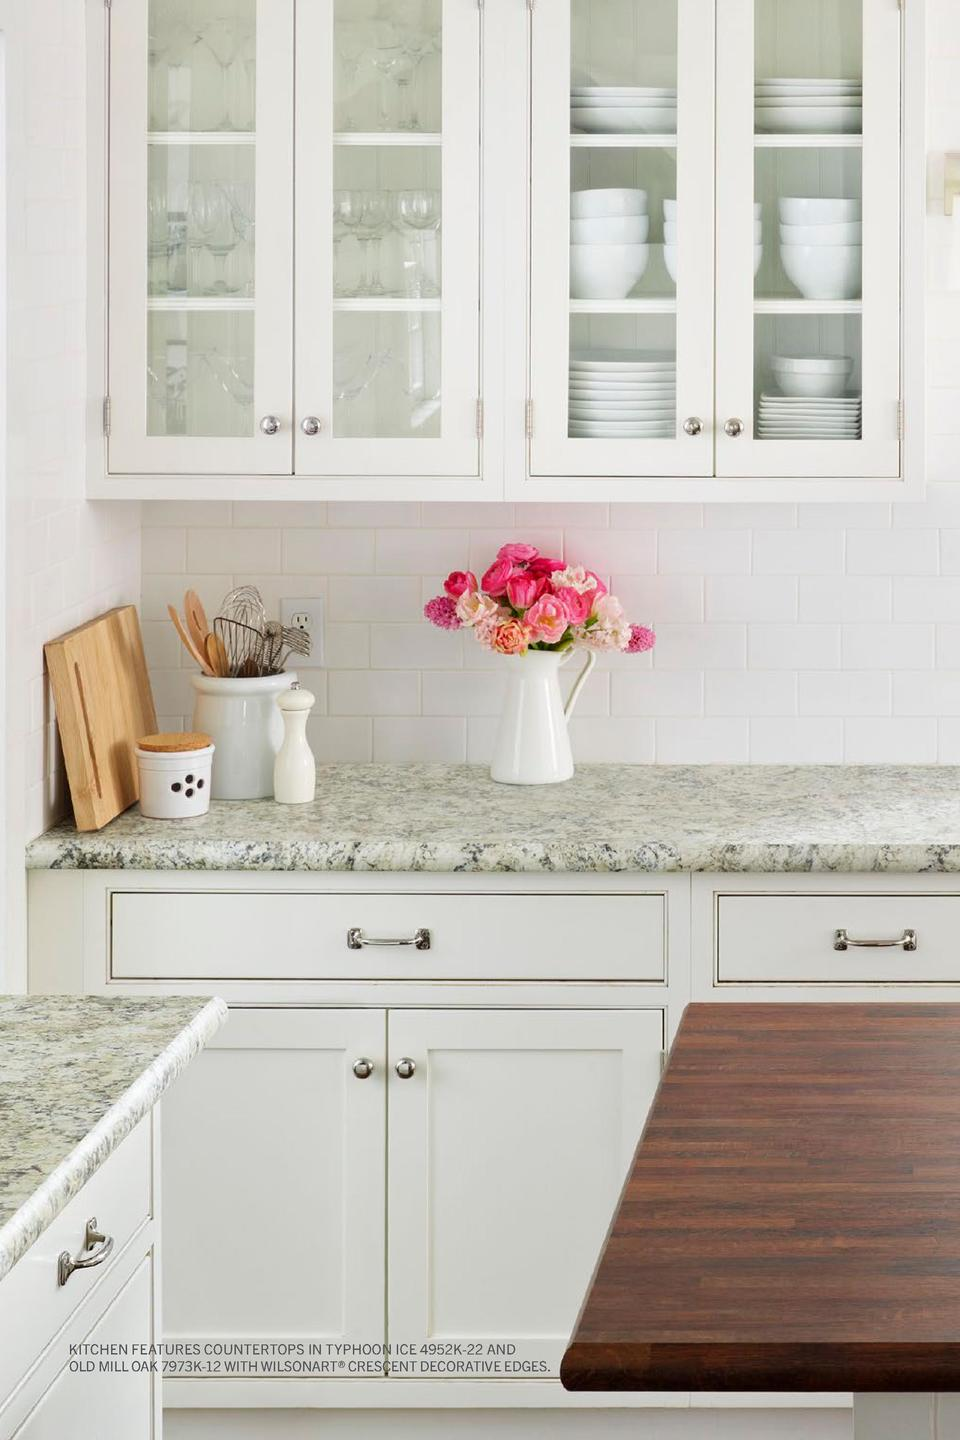 Kitchen features Countertops in Typhoon Ice 4952K-22 and Old Mill Oak 7973K-12 with Wilsonart   Crescent Decorative Edges....